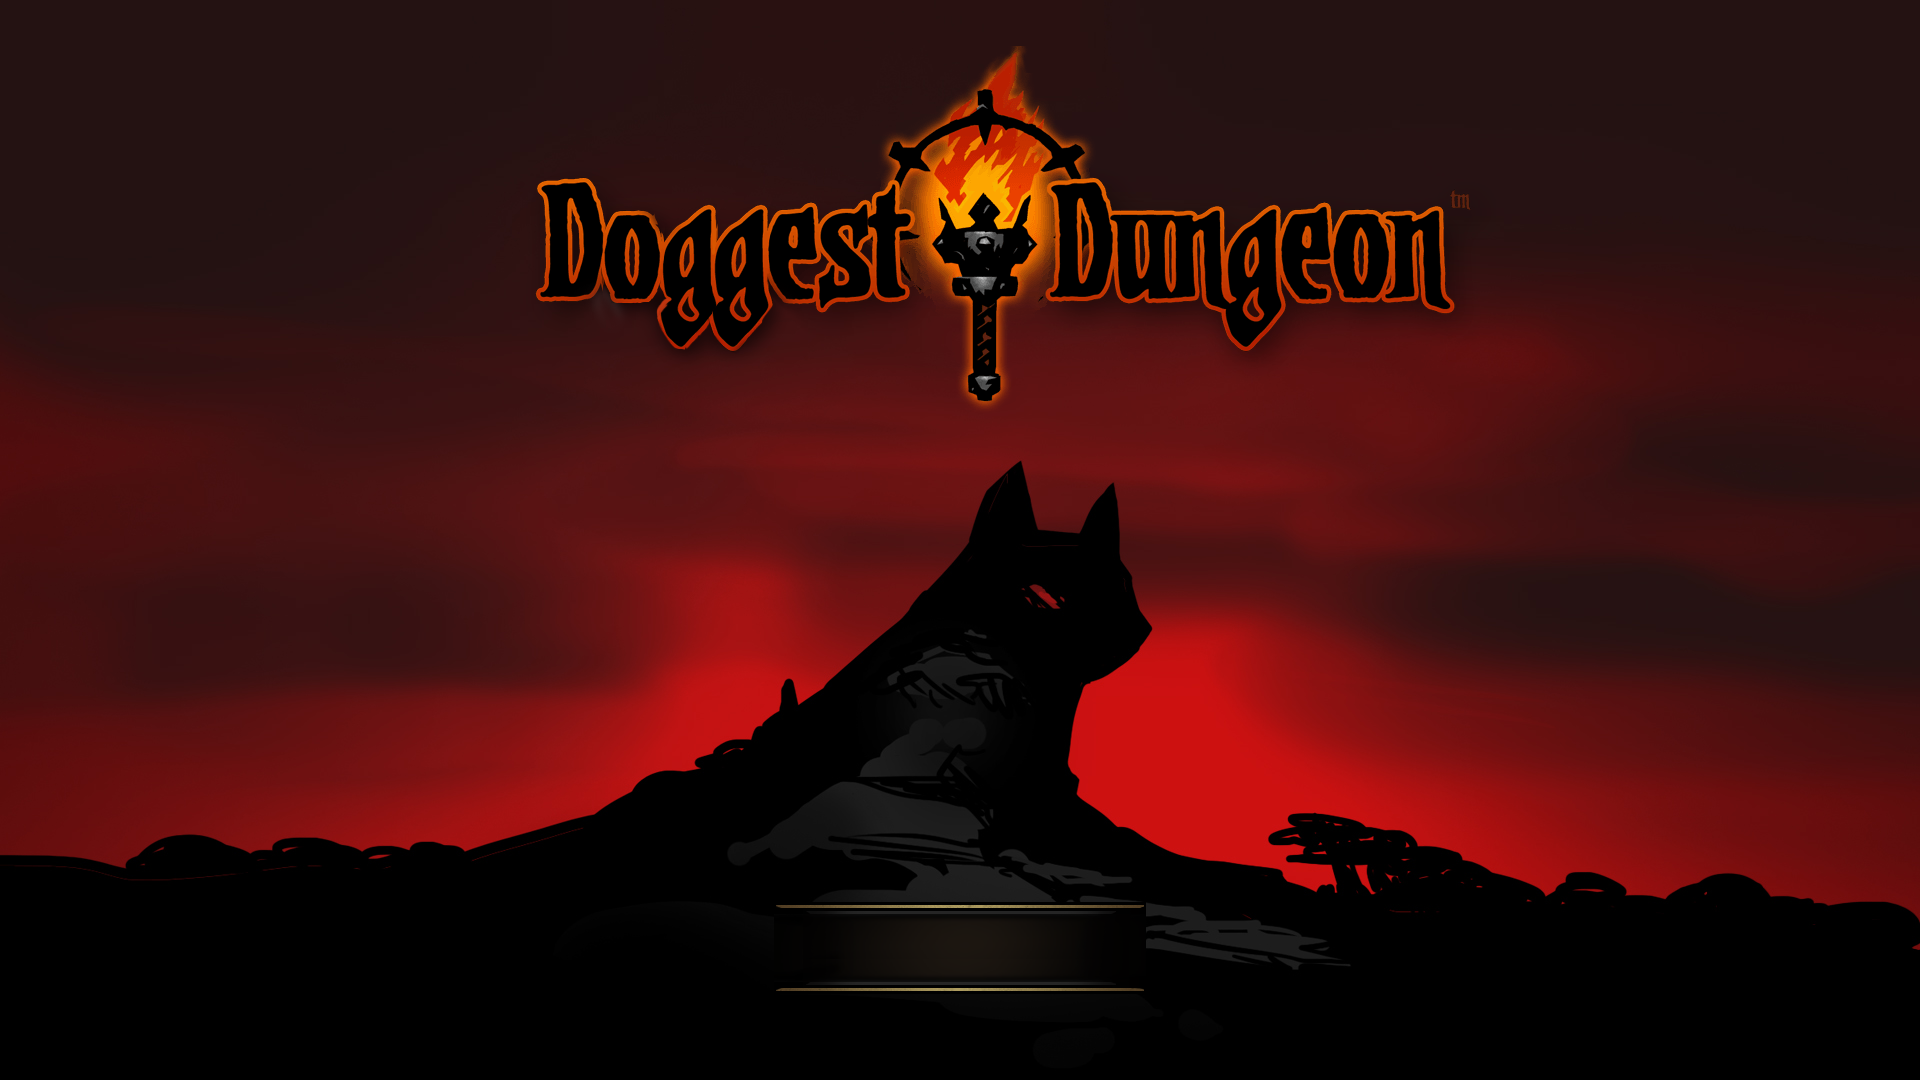 Doggest Dungeon